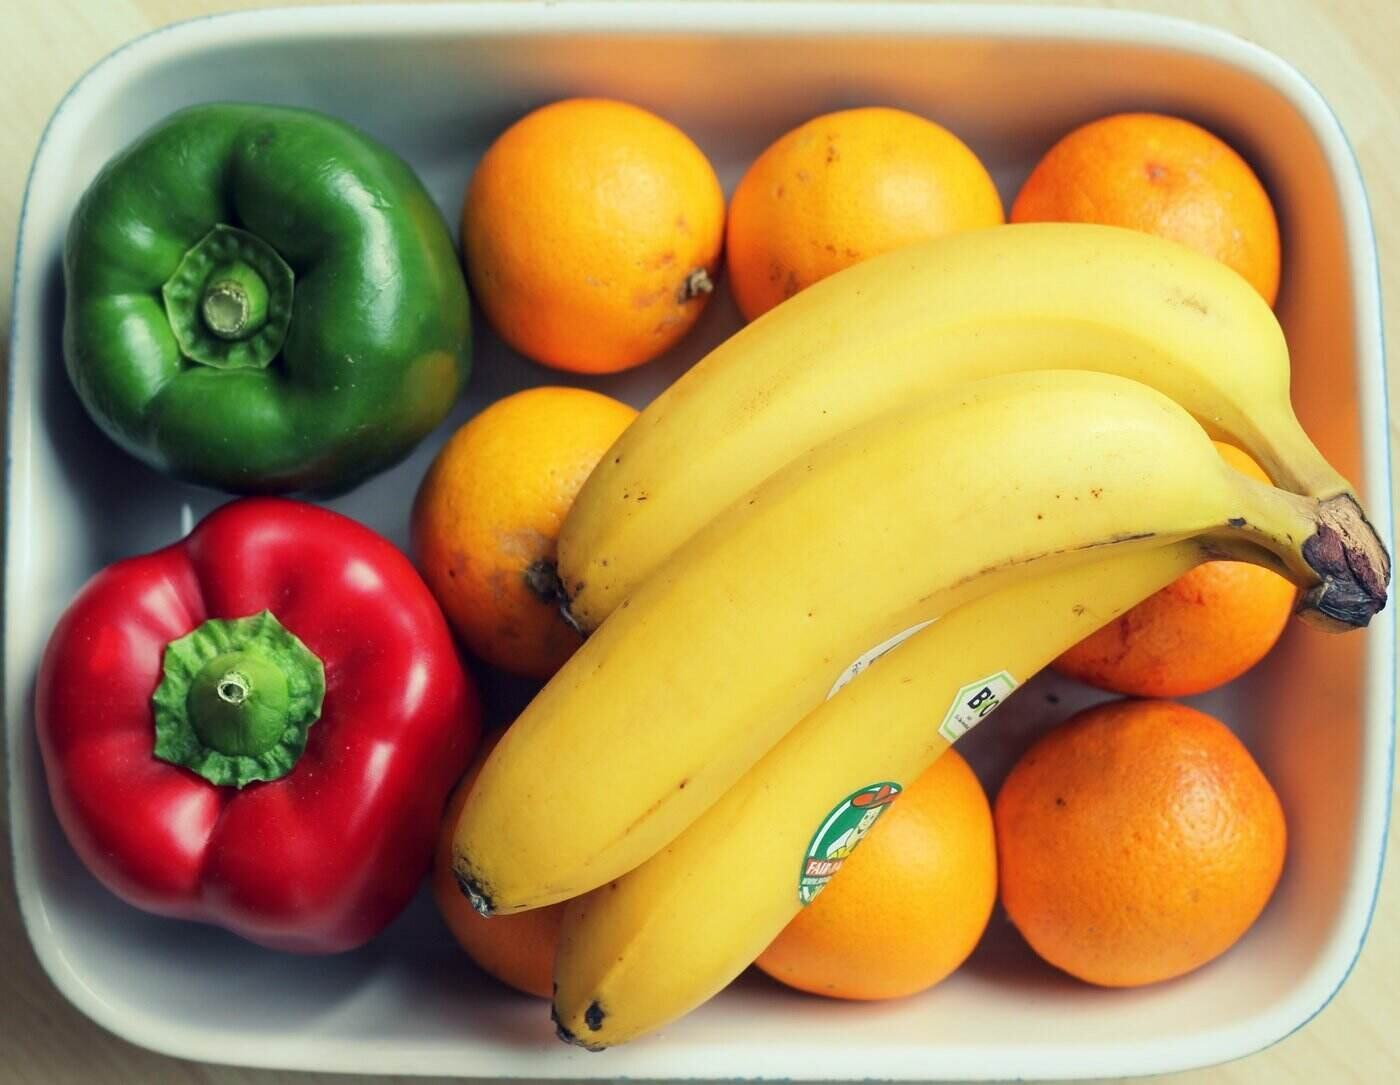 bananas oranges and peppers in dish - 5 ways reducing food waste can help save the environment